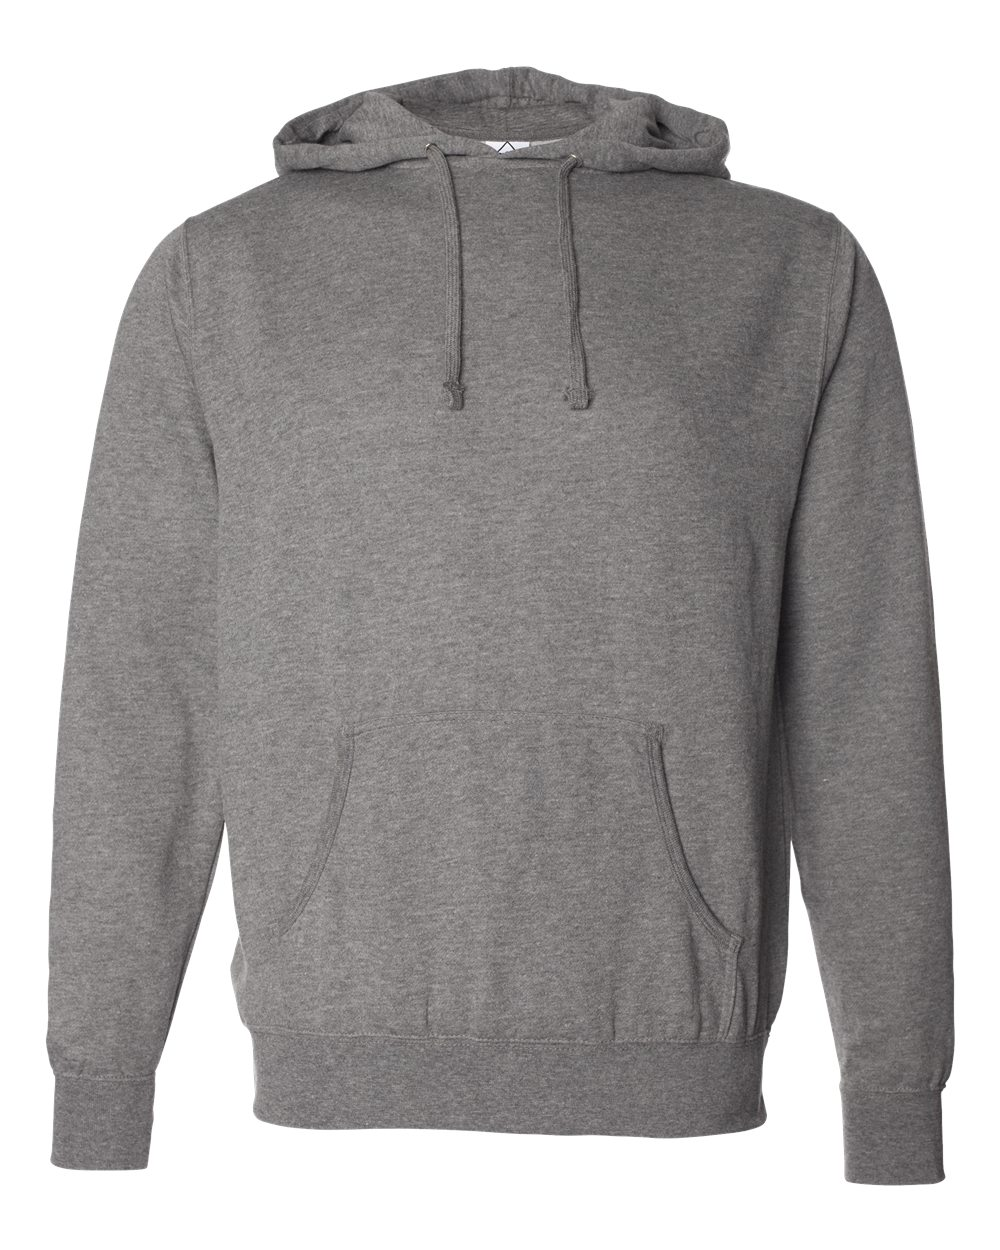 Independent_Trading_Co._AFX4000_Gunmetal_Heather_Front_High.jpg